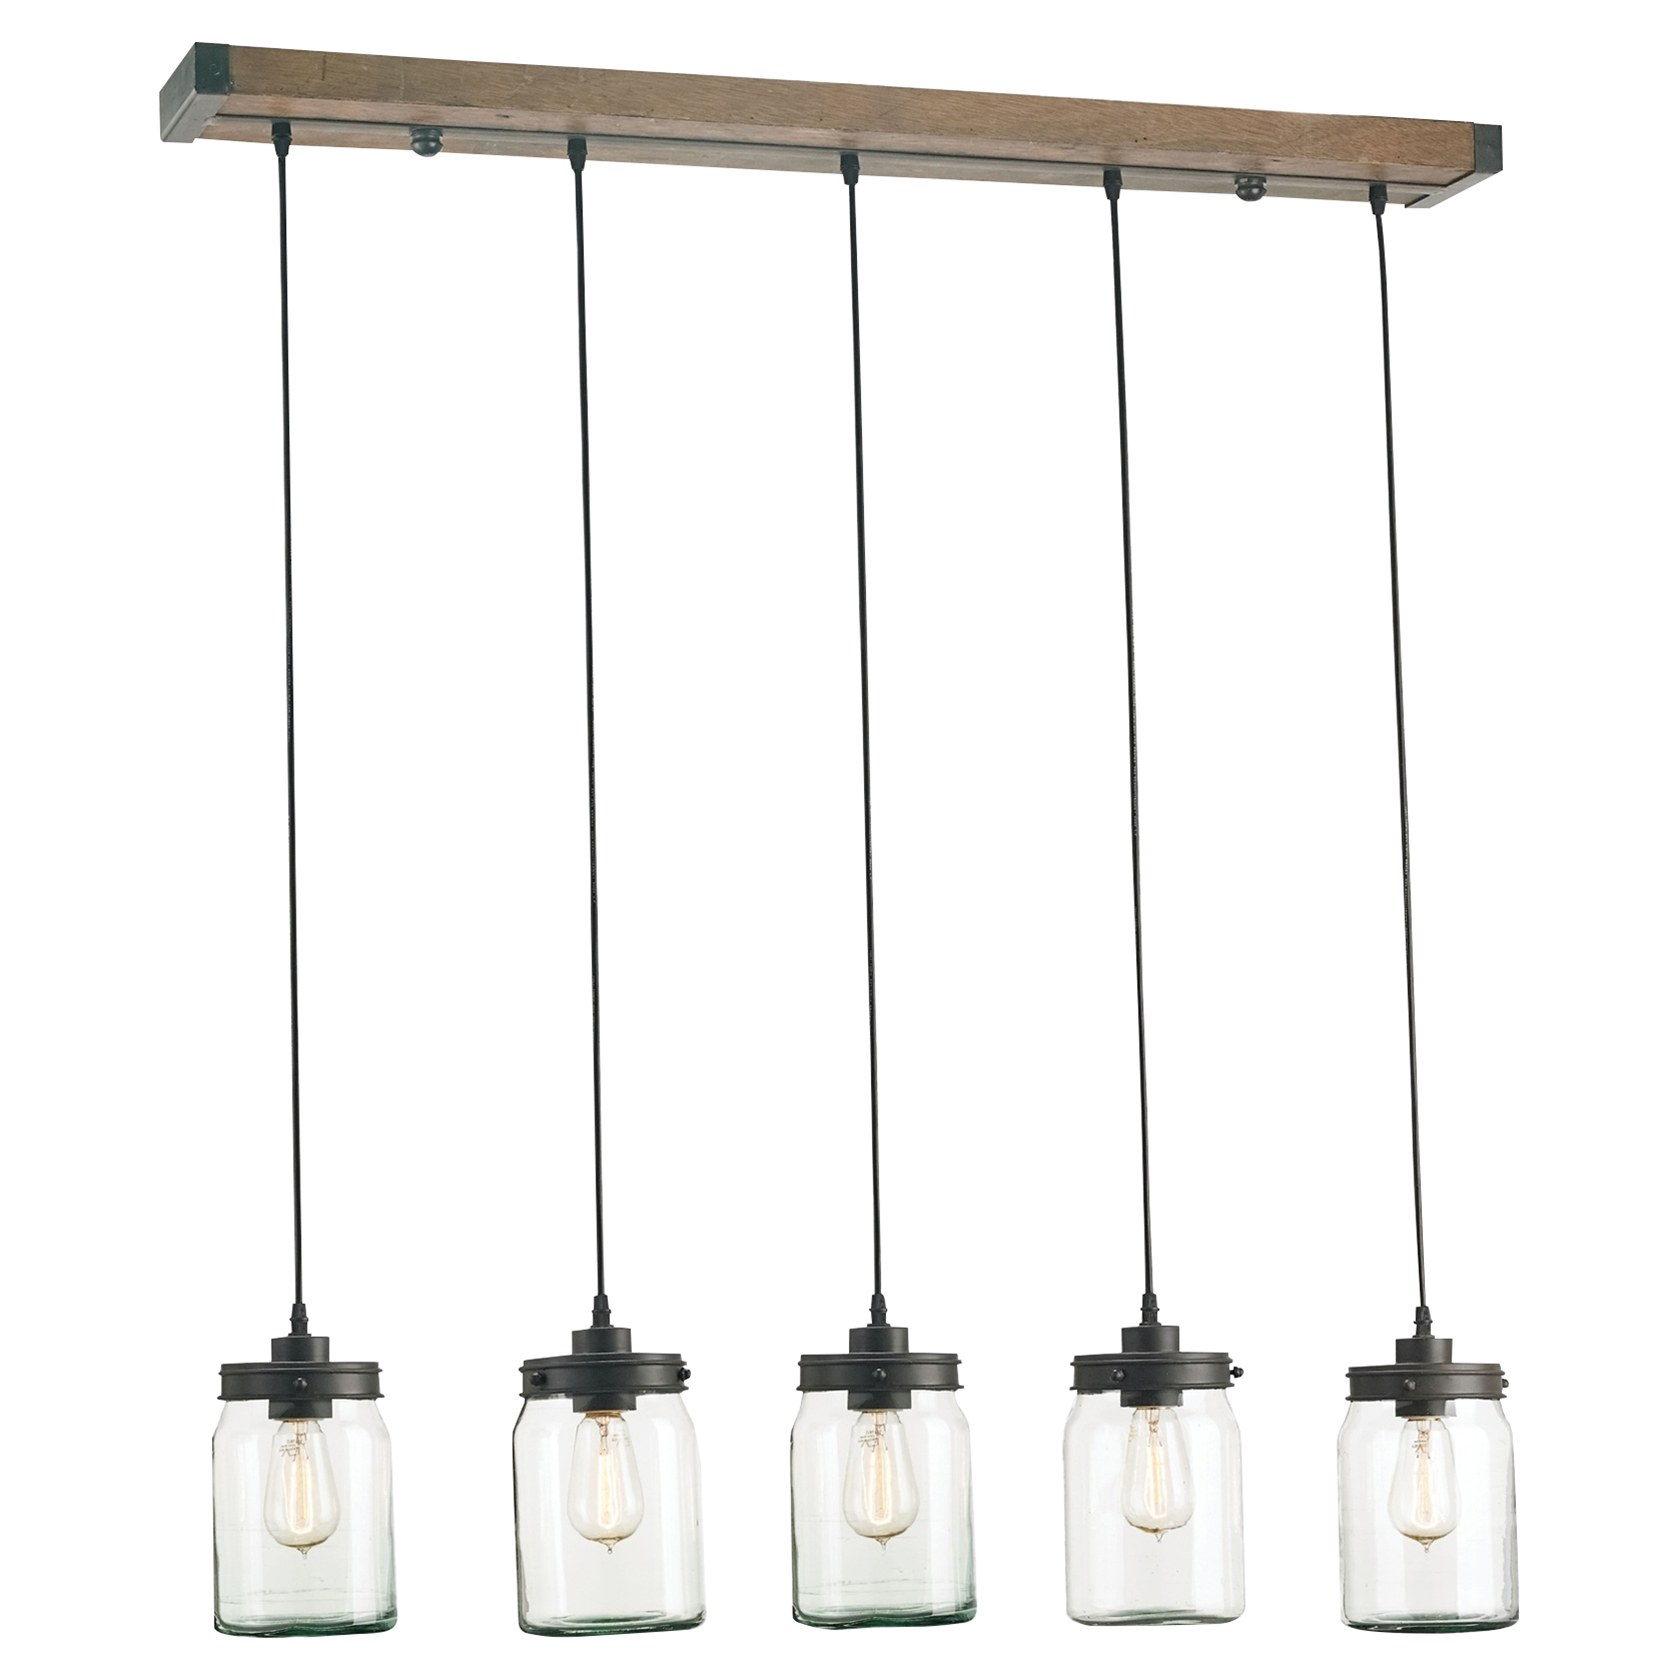 Audny Industrial Loft Rustic Glass Jars Chandelier